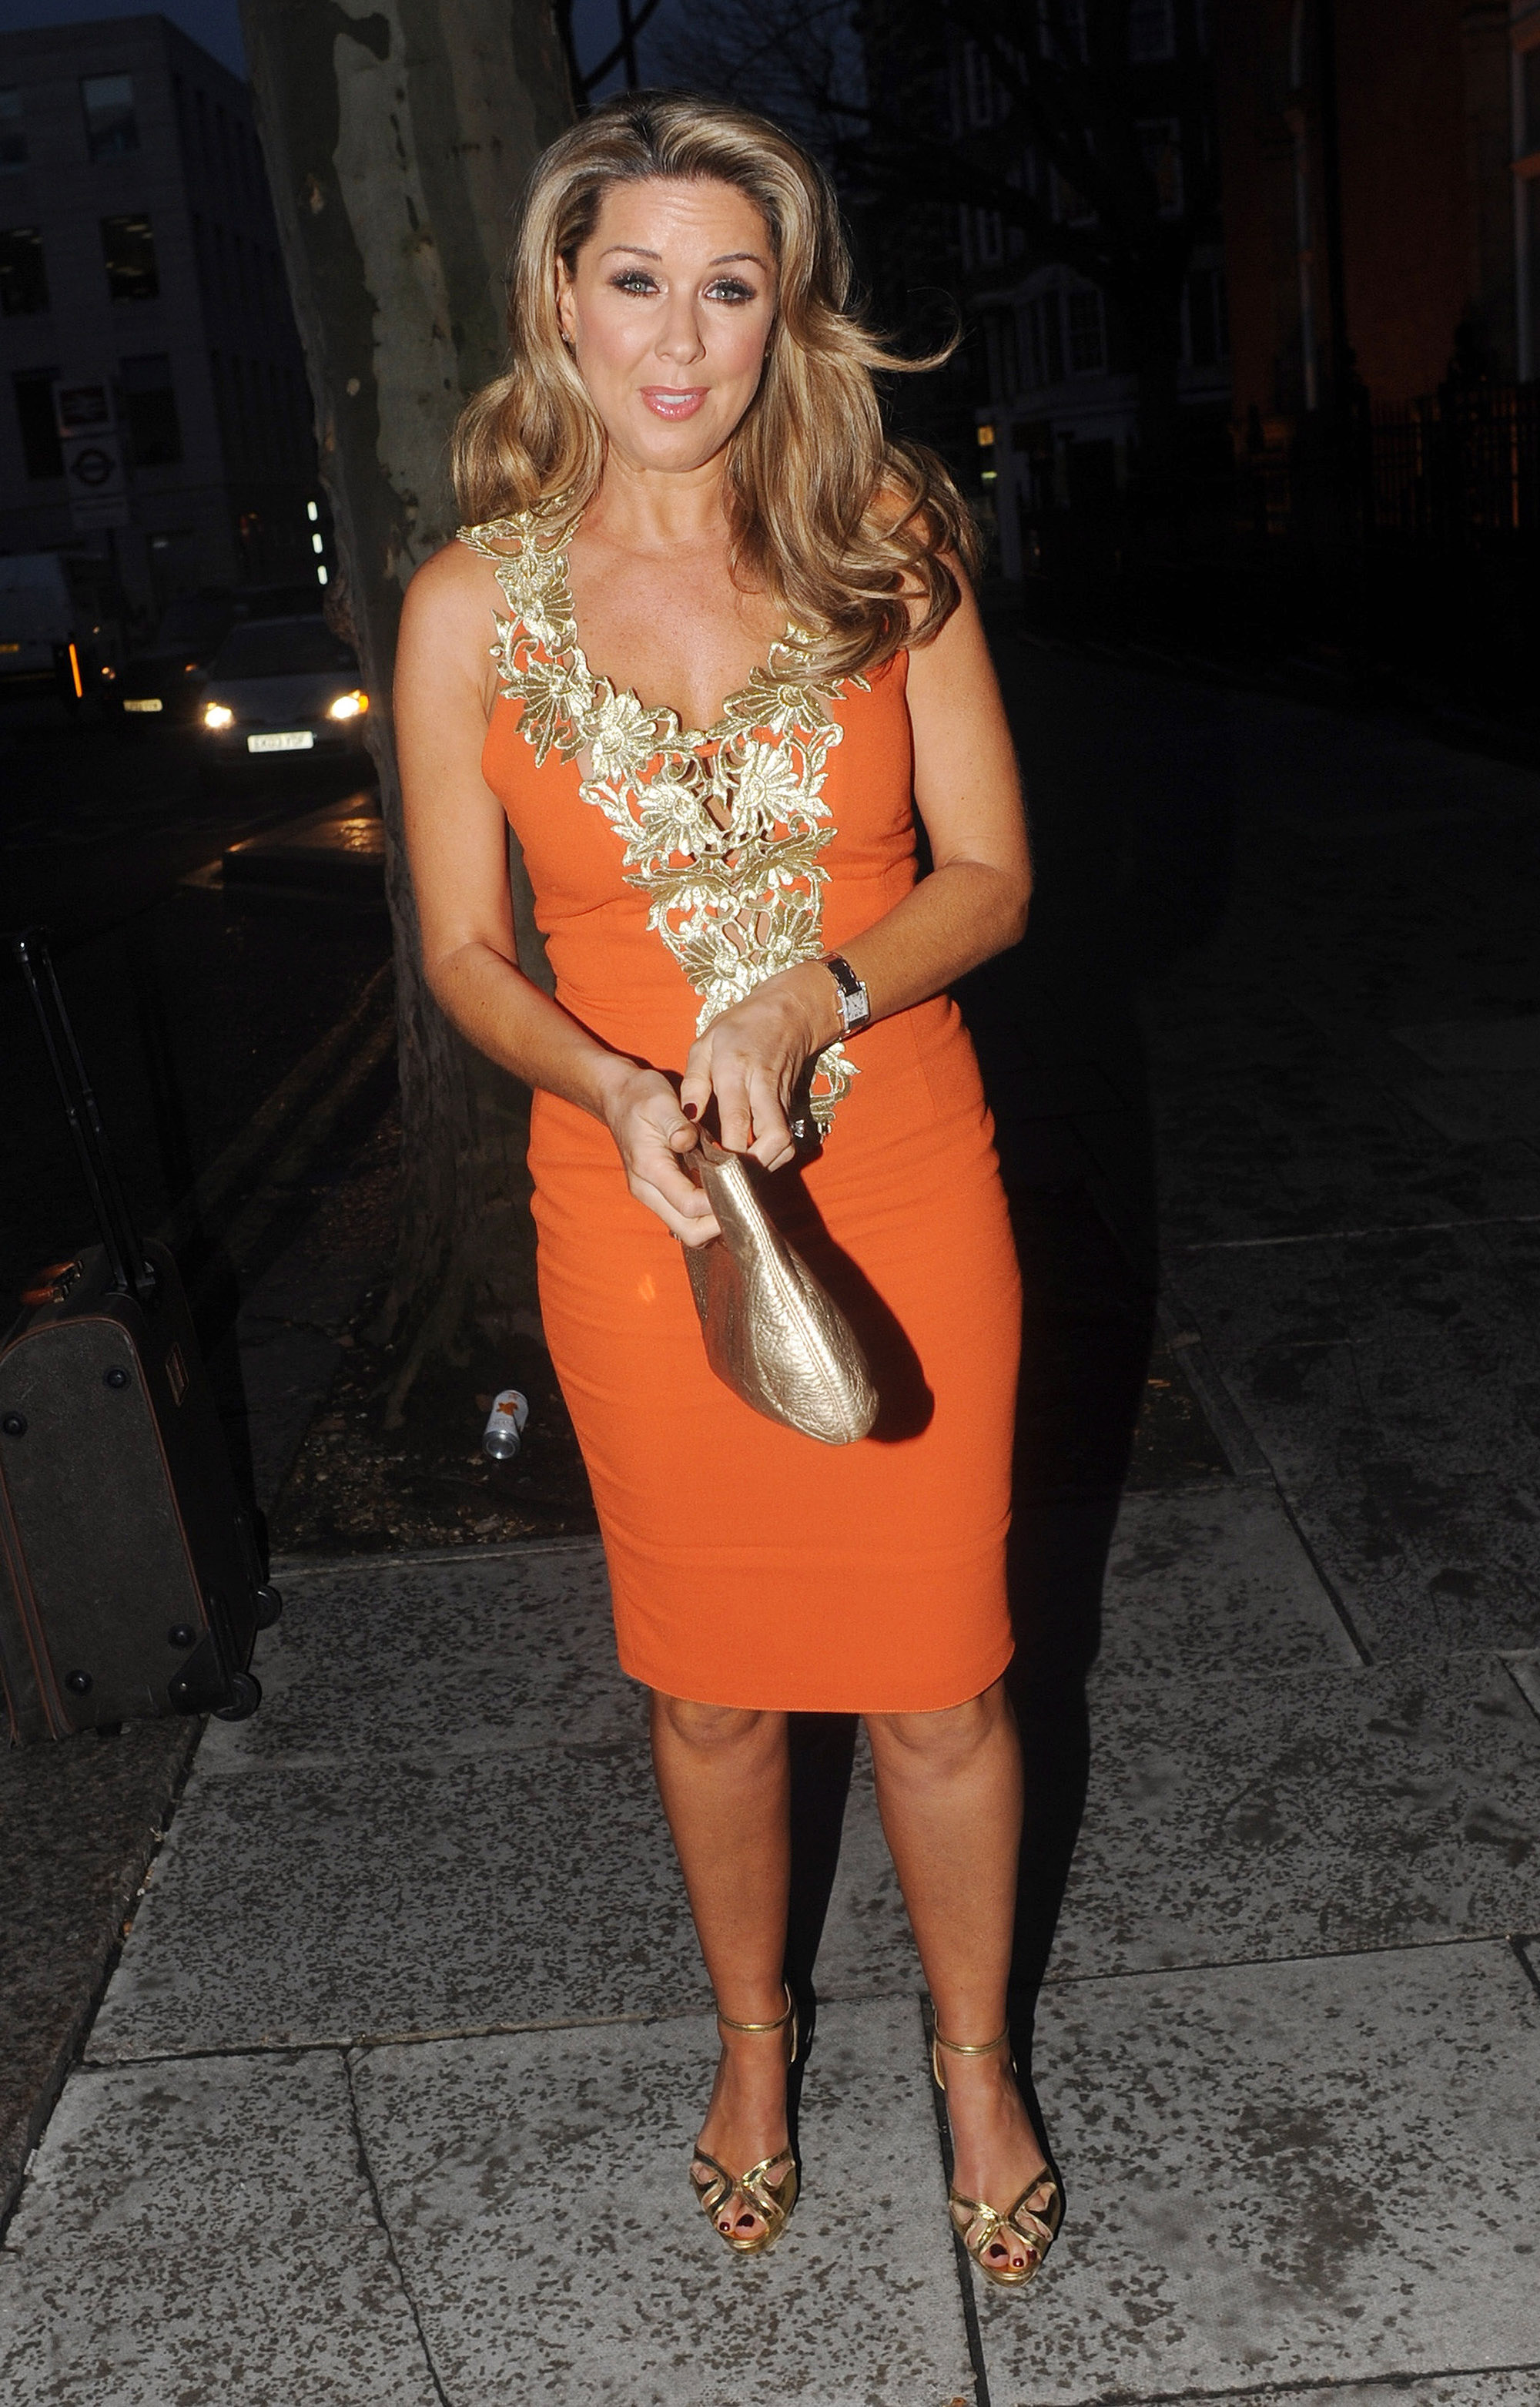 Claire Sweeney (born 1971) nude (66 foto) Leaked, Snapchat, cameltoe